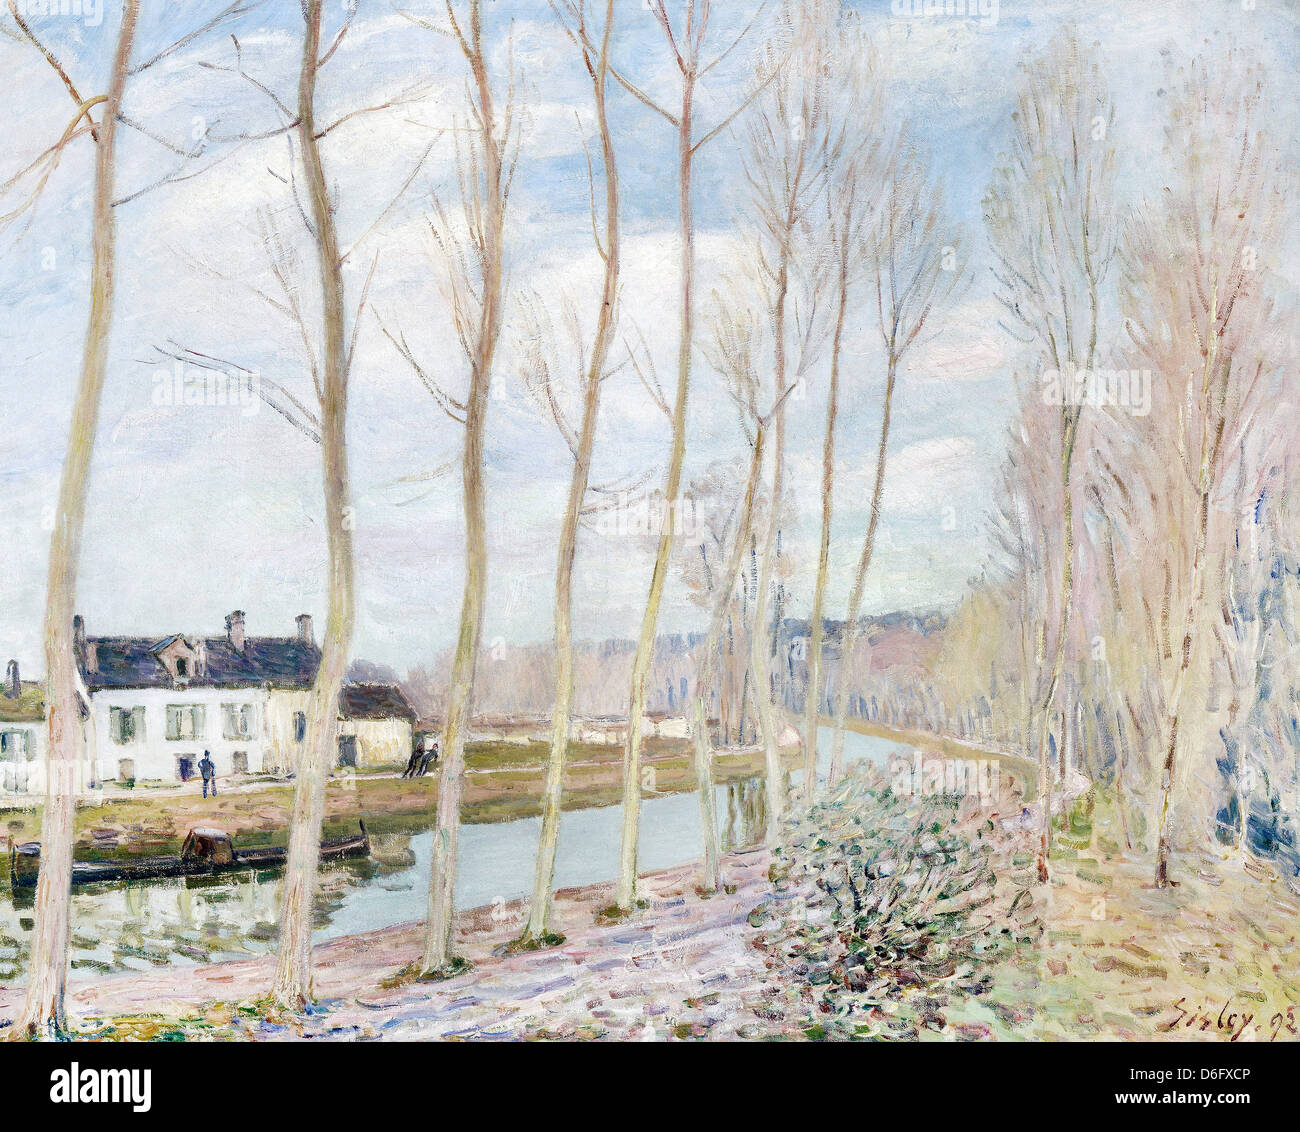 Alfred Sisley, The Loing's Canal 1892 Oil on canvas. Musée d'Orsay, Paris - Stock Image